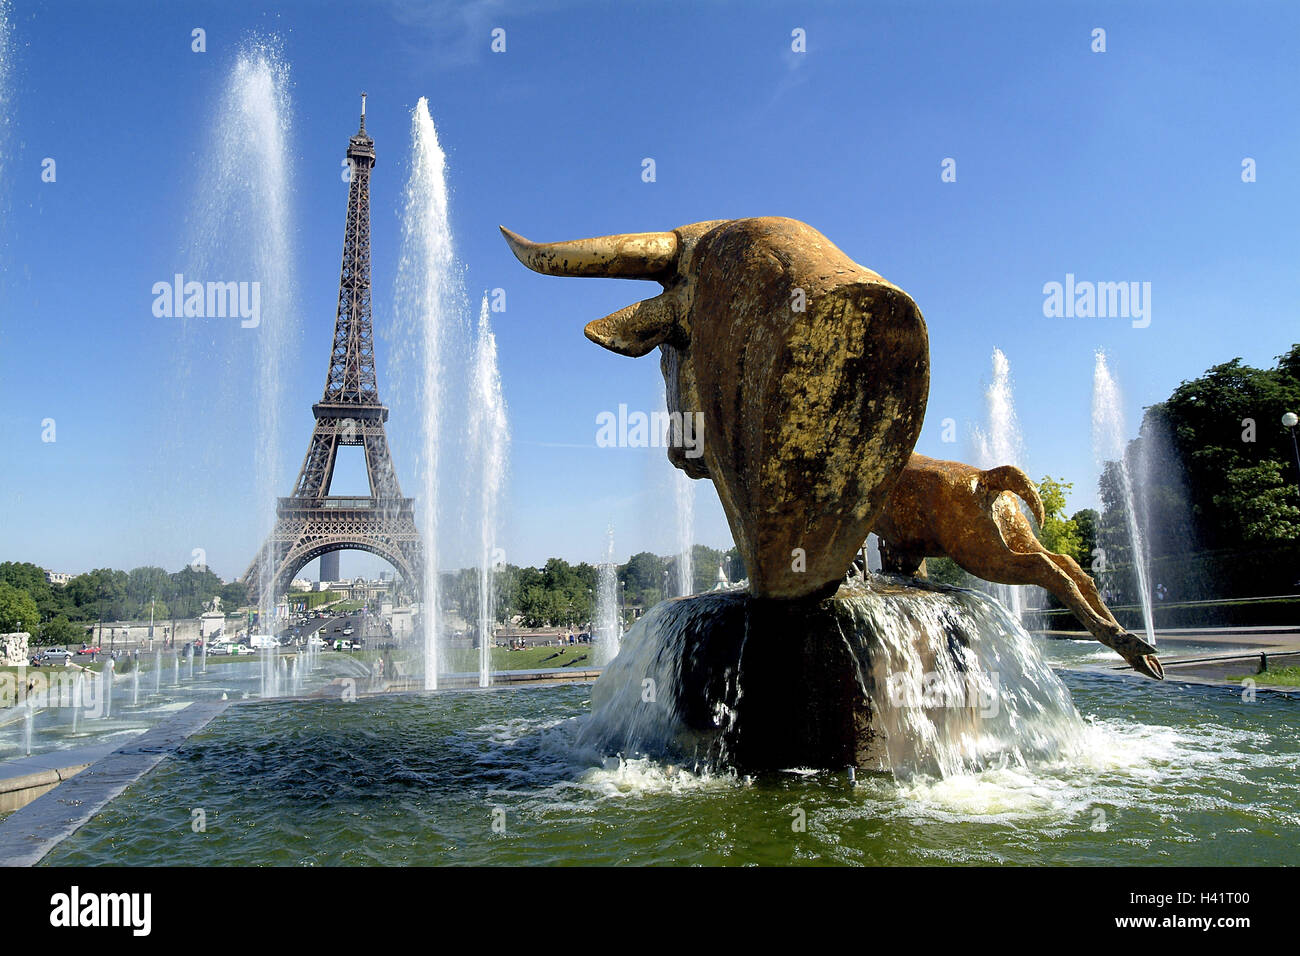 France, Paris, Trocadero, Eiffel Tower, fountain, well characters, Europe, town, capital, construction, architecture, Stock Photo